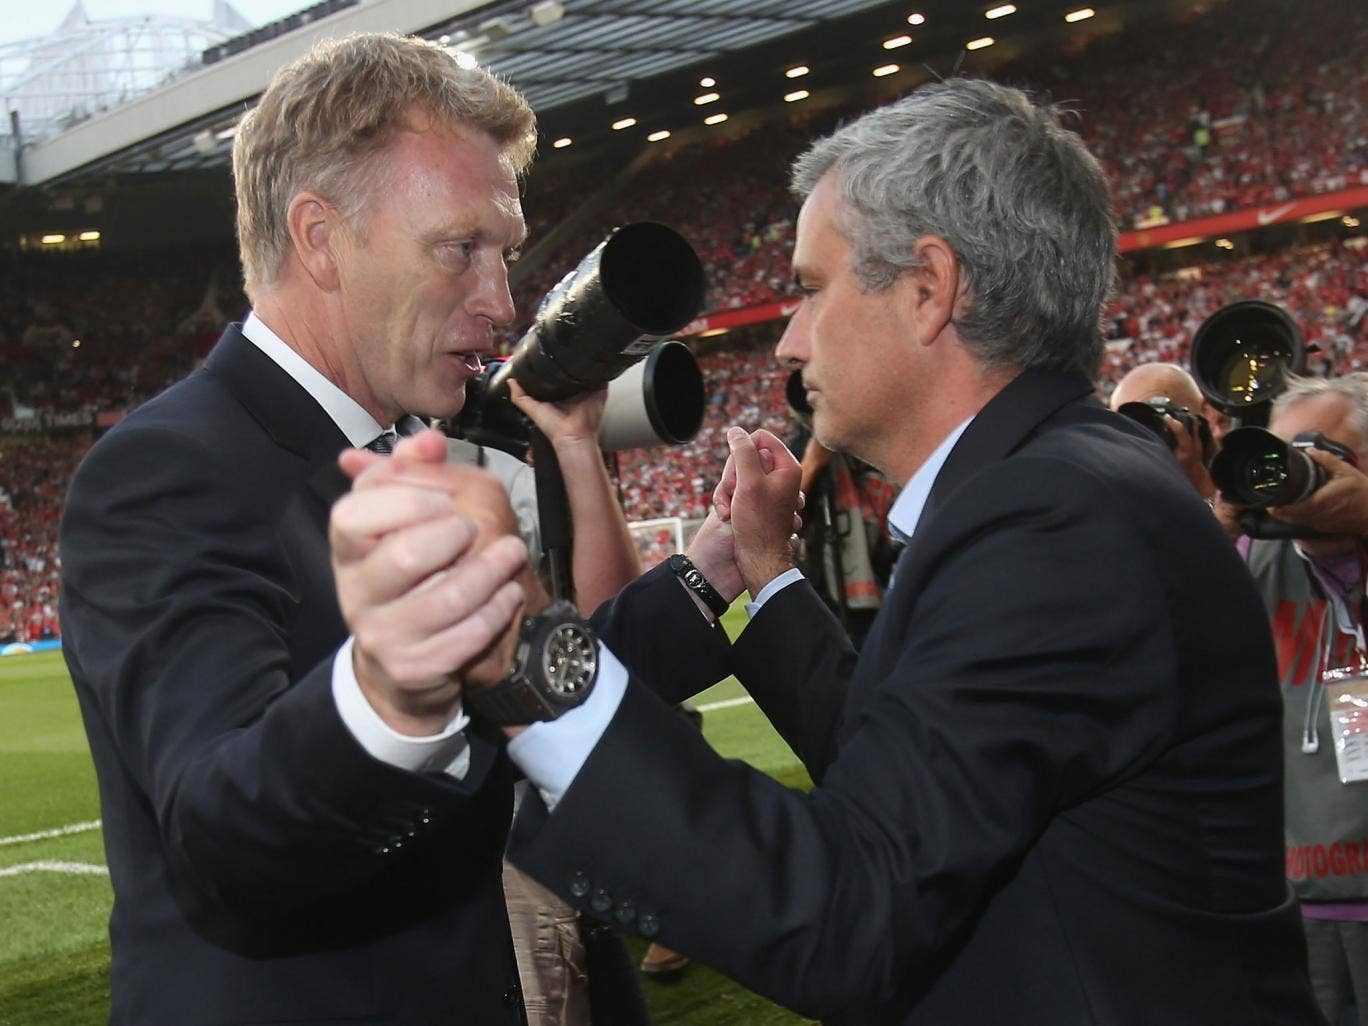 David Moyes and Jose Mourinho shake hands ahead of the goalless draw between Manchester United and Chelsea at Old Trafford in August 2013